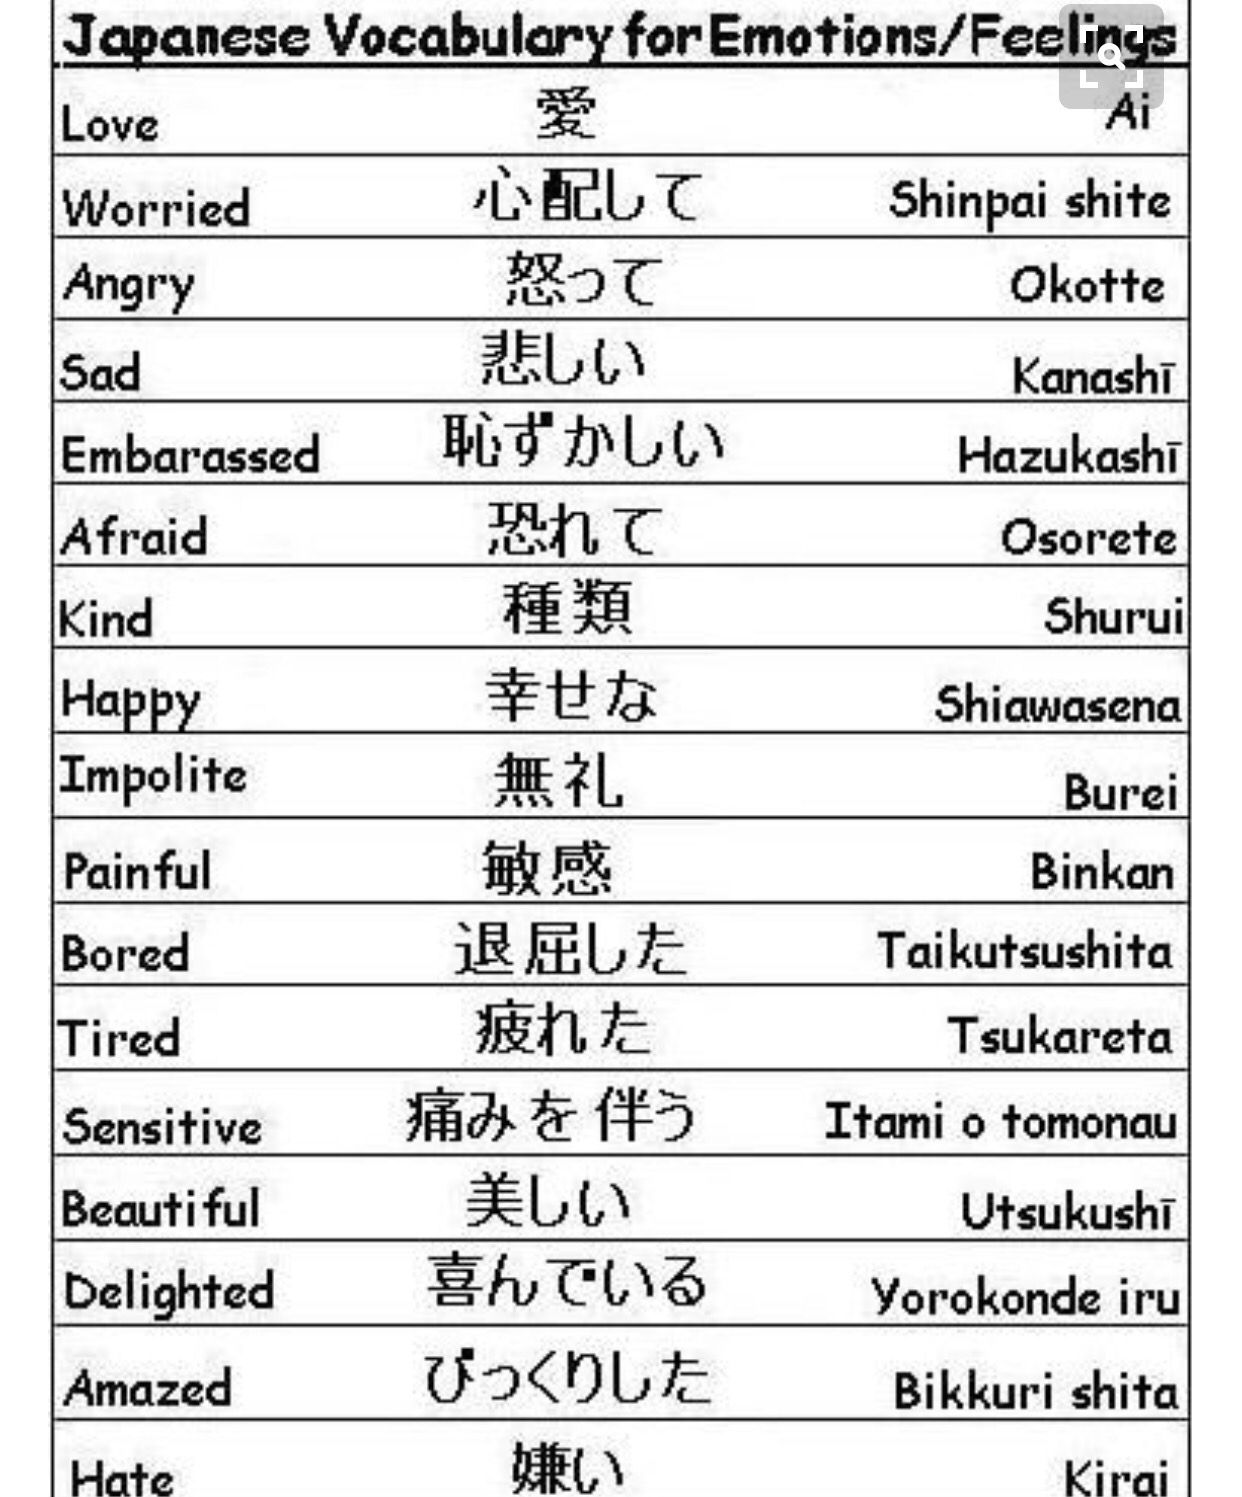 Pin By Wanny Hung On Learning Japanese